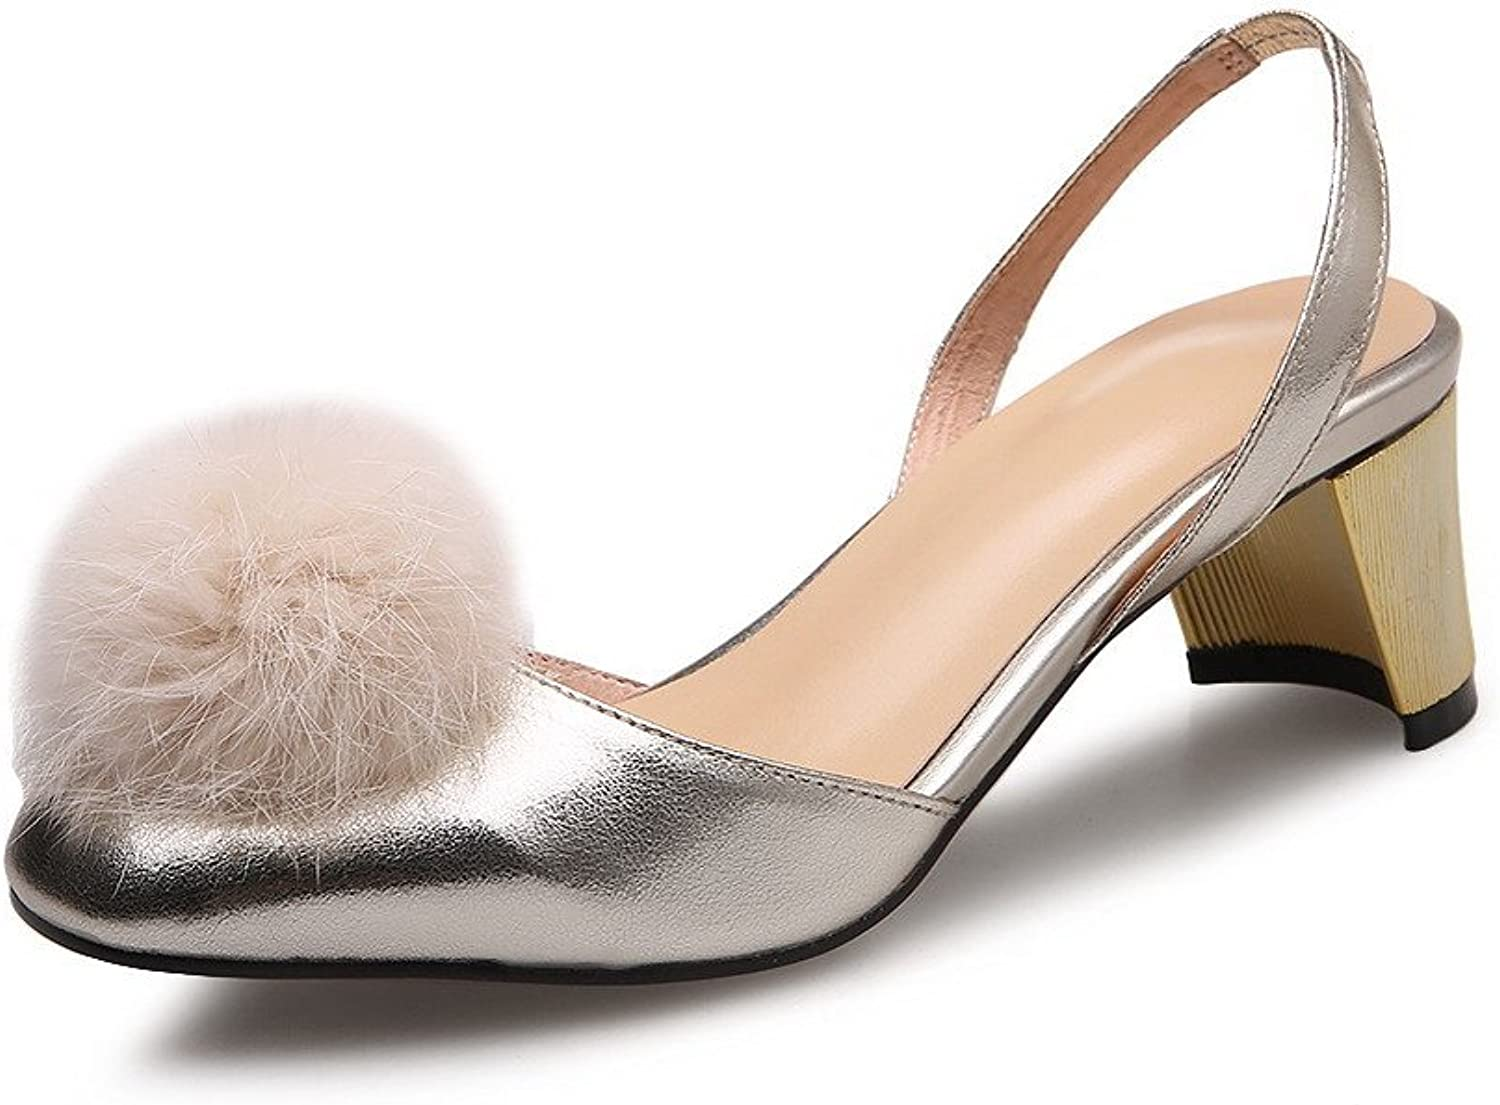 AmoonyFashion Women's Pull-on Kitten-Heels Cow Leather Solid Closed Toe Sandals